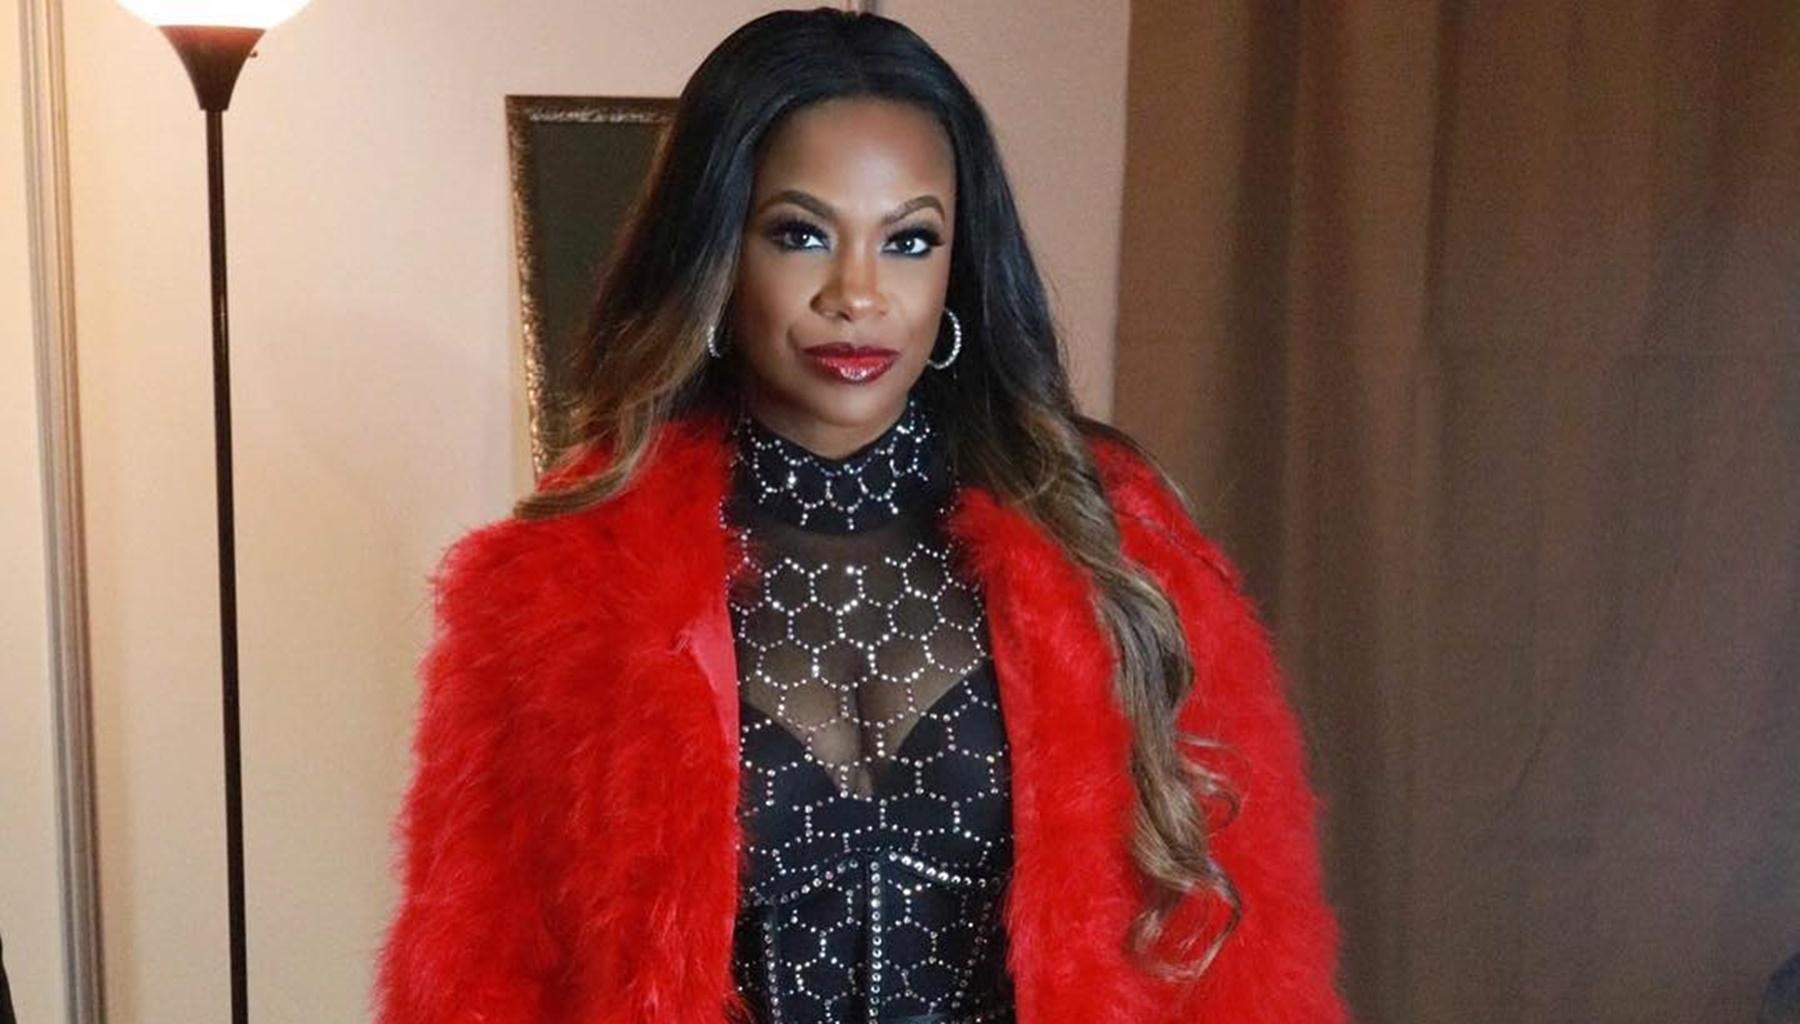 Kandi Burruss Is Bashed For Scandalous Dance With Todd Tucker Surrounded By Other Women In Viral Video: 'Jesus Does Not Like This'